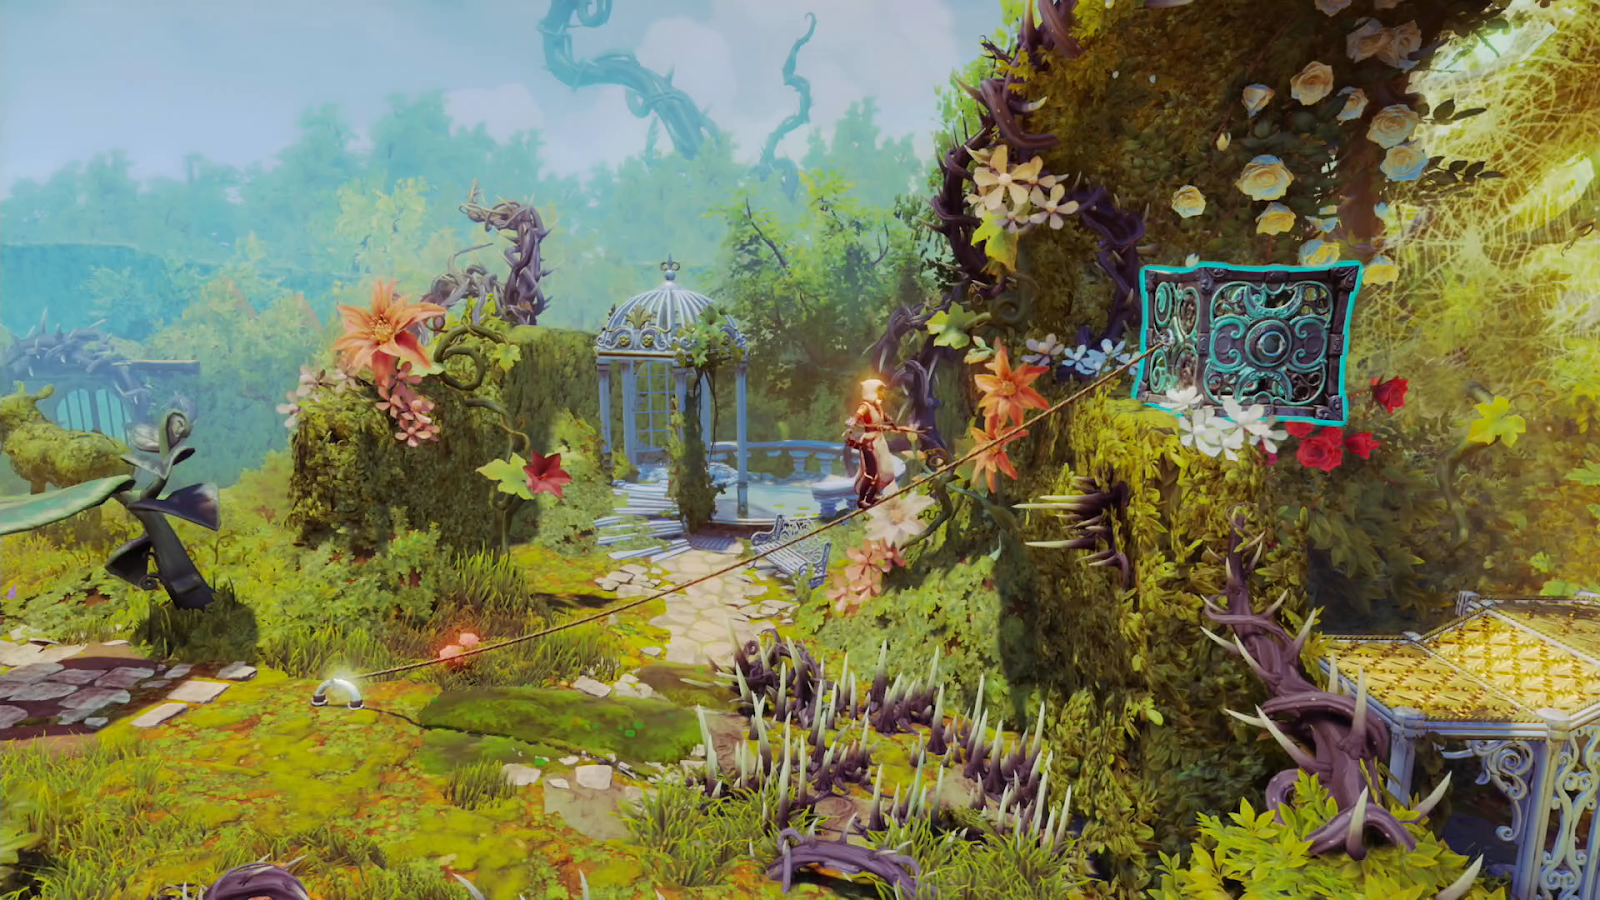 Trine 4 Is A Triumphant Return To Form